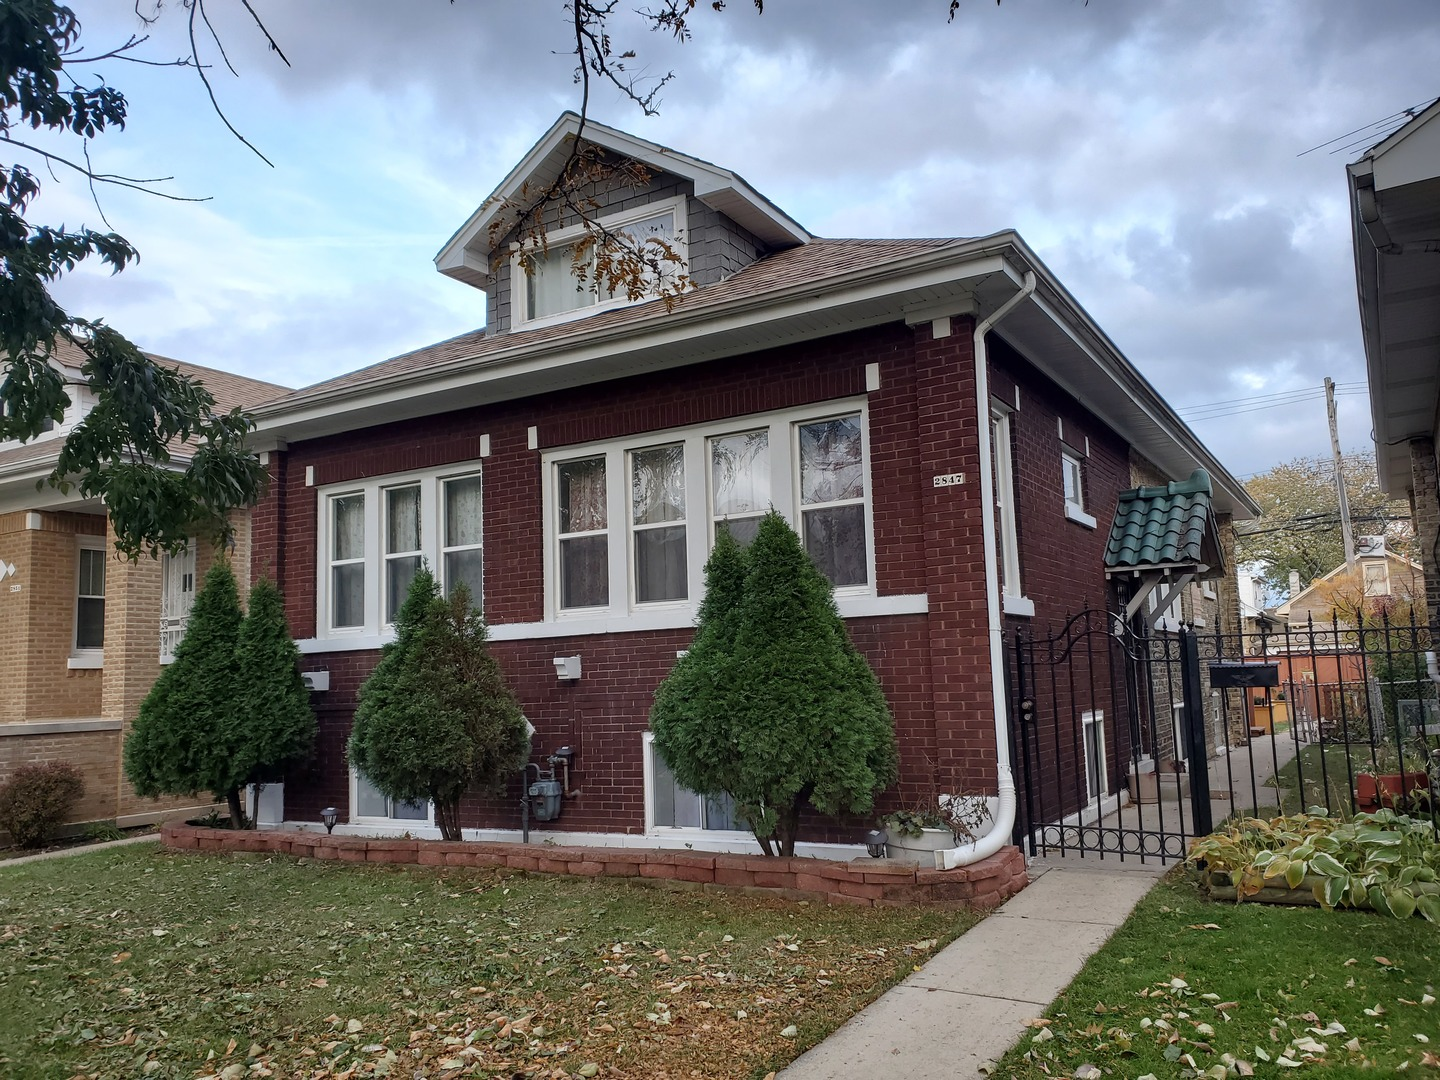 2847 N Keating Avenue, Chicago IL 60641